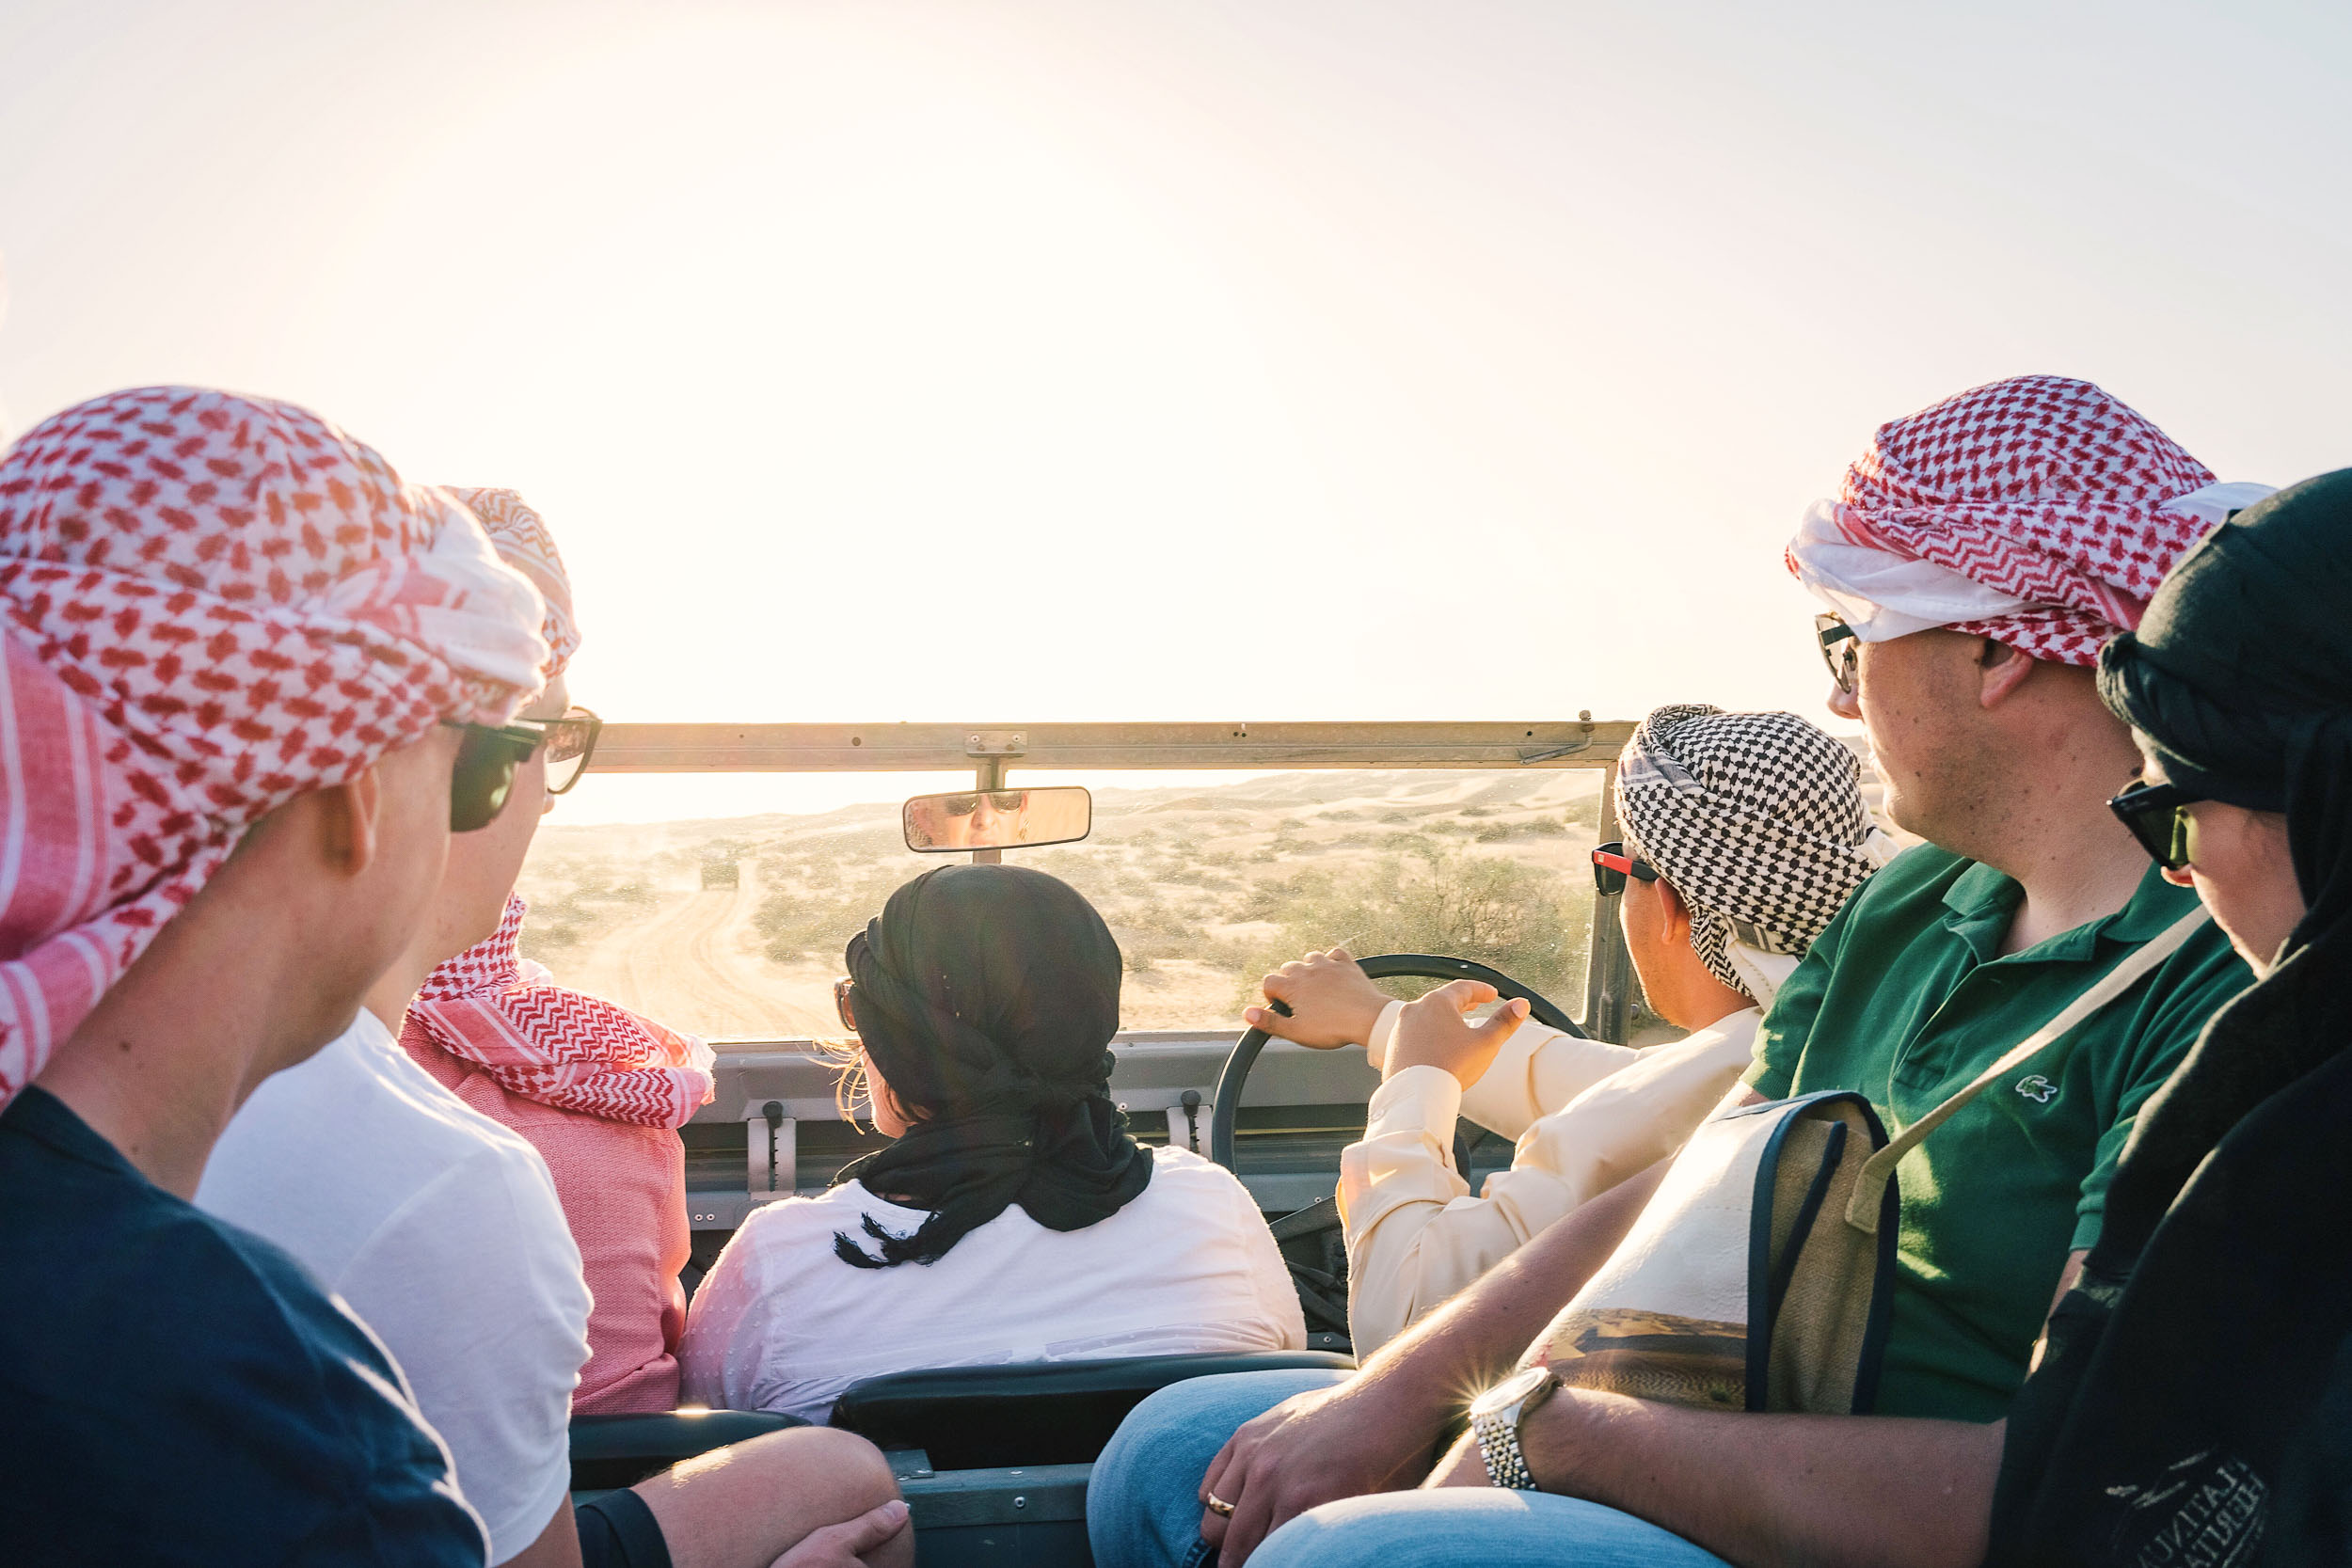 Driving vintage 1950's Land Rovers through the desert in Dubai